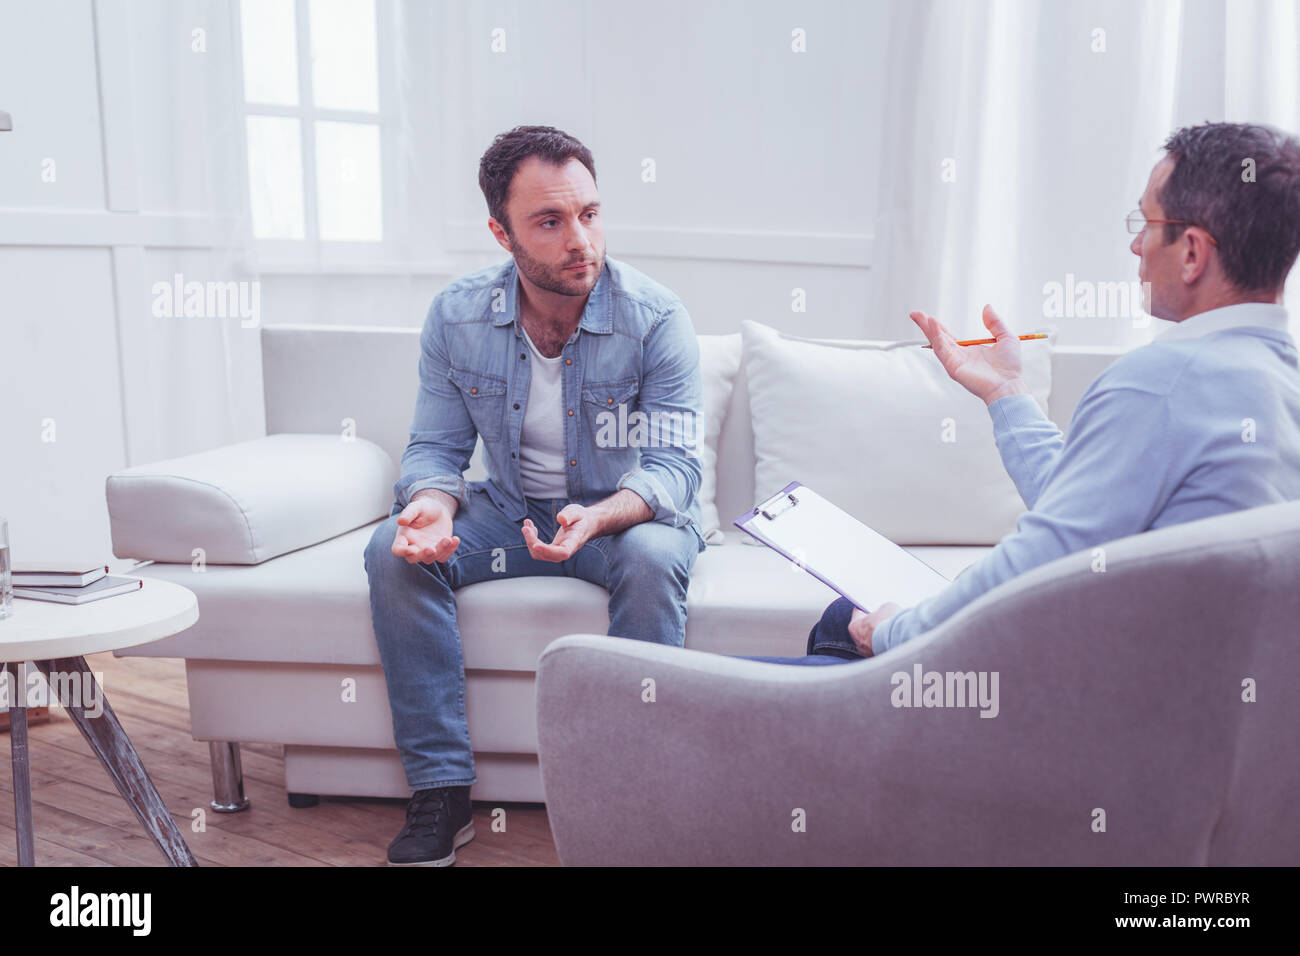 Upset bearded man lifting his hands in dismay during therapy - Stock Image